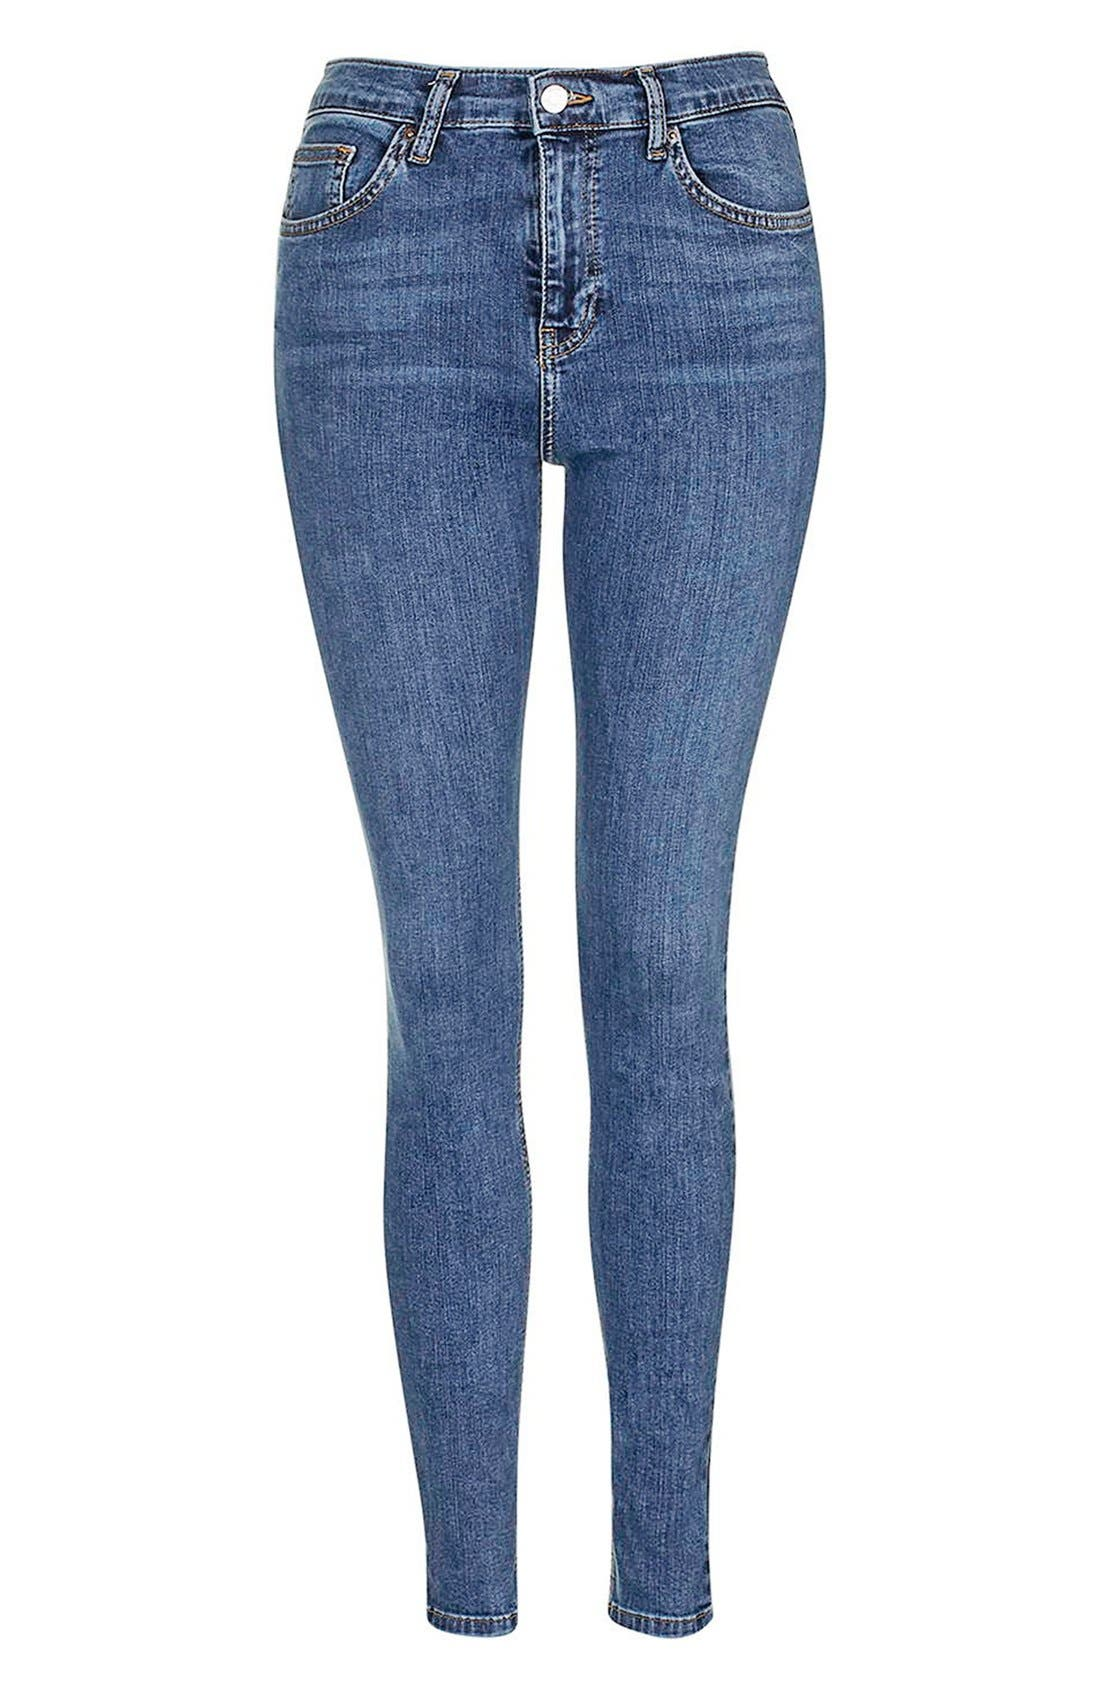 TOPSHOP, 'Jamie' High Rise Ankle Skinny Jeans, Alternate thumbnail 5, color, MID DENIM